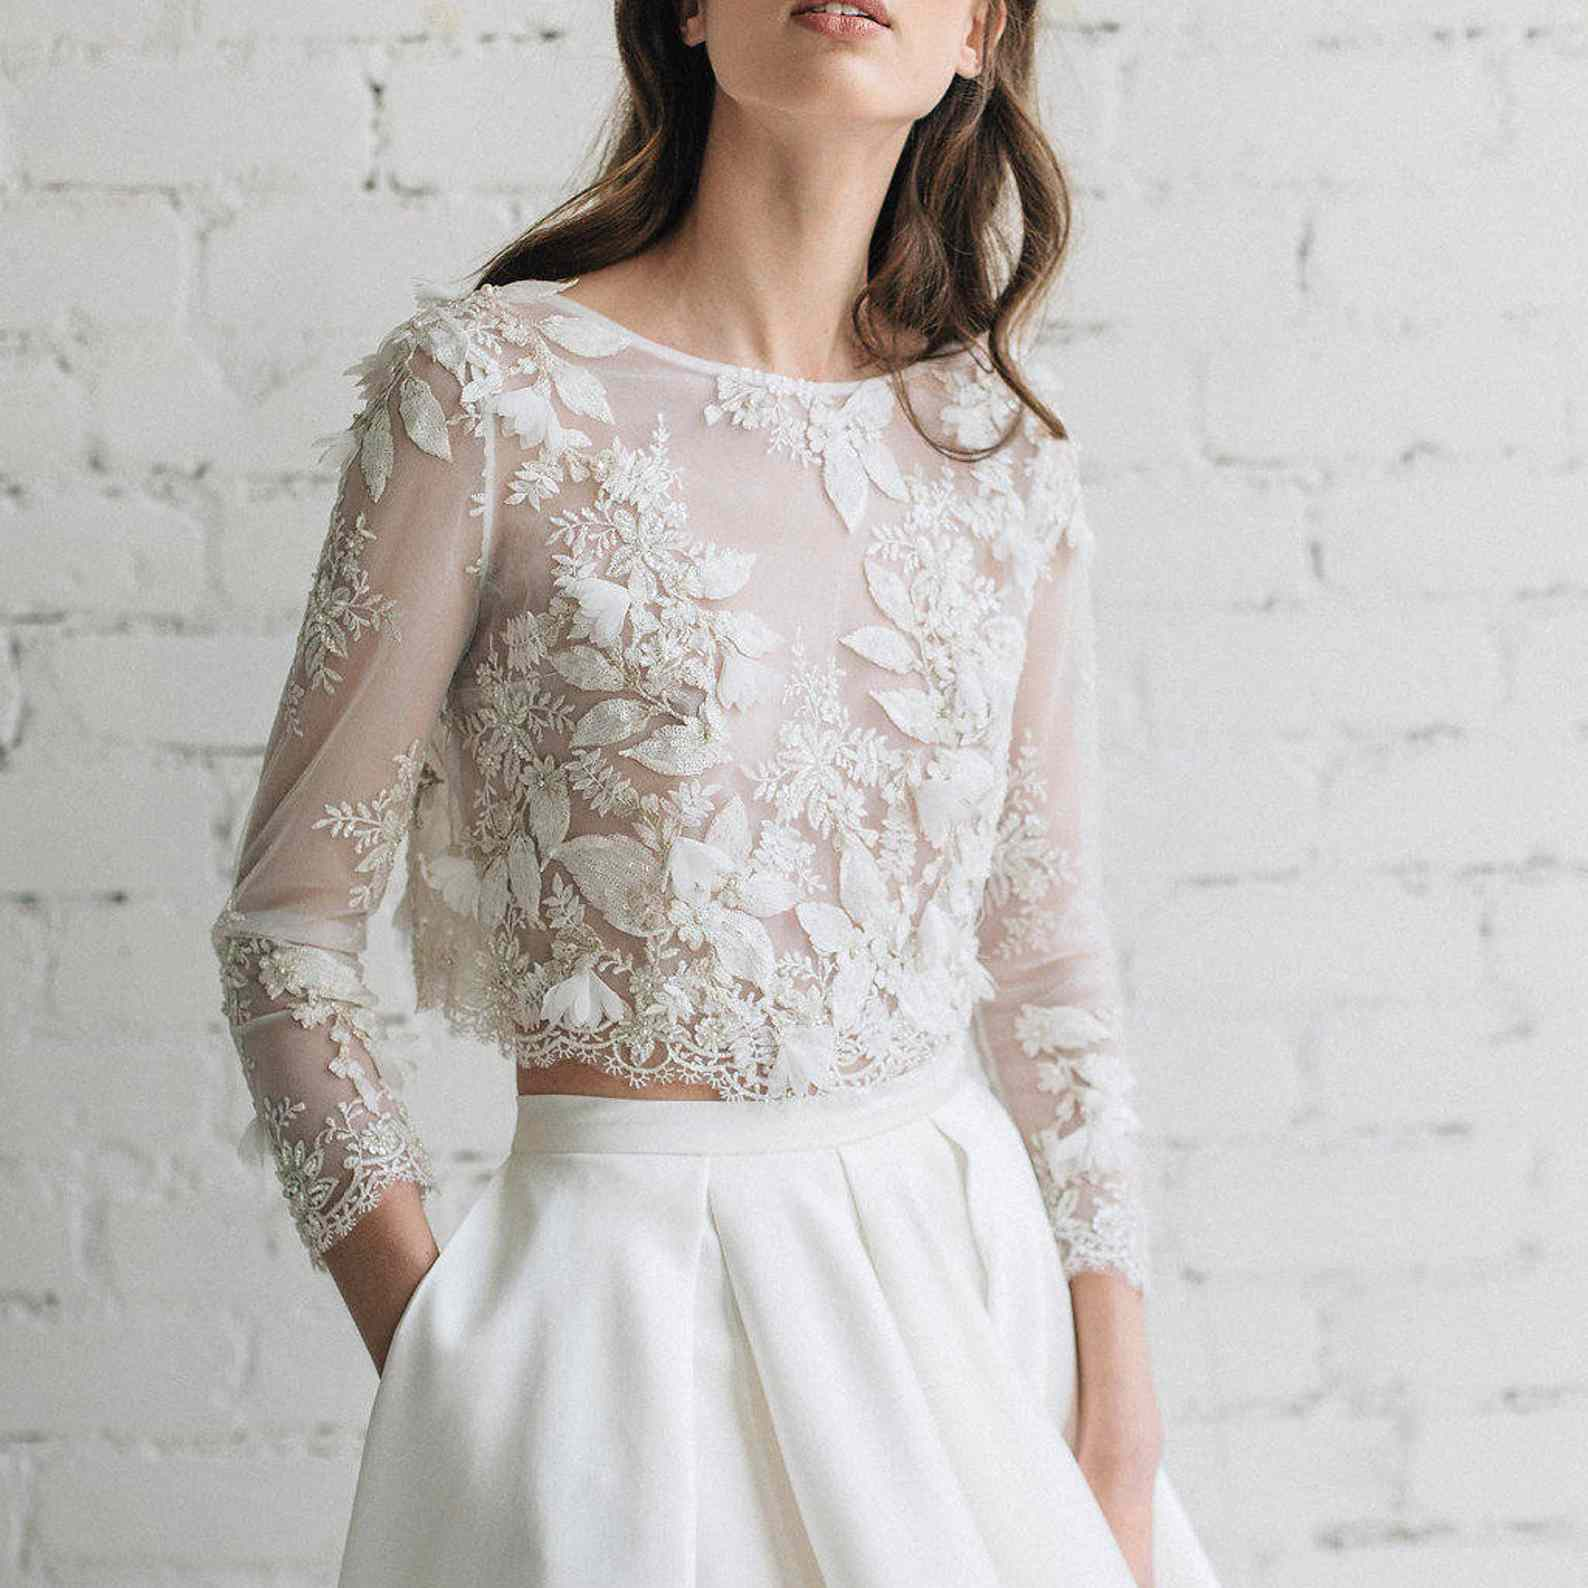 beaded top and skirt